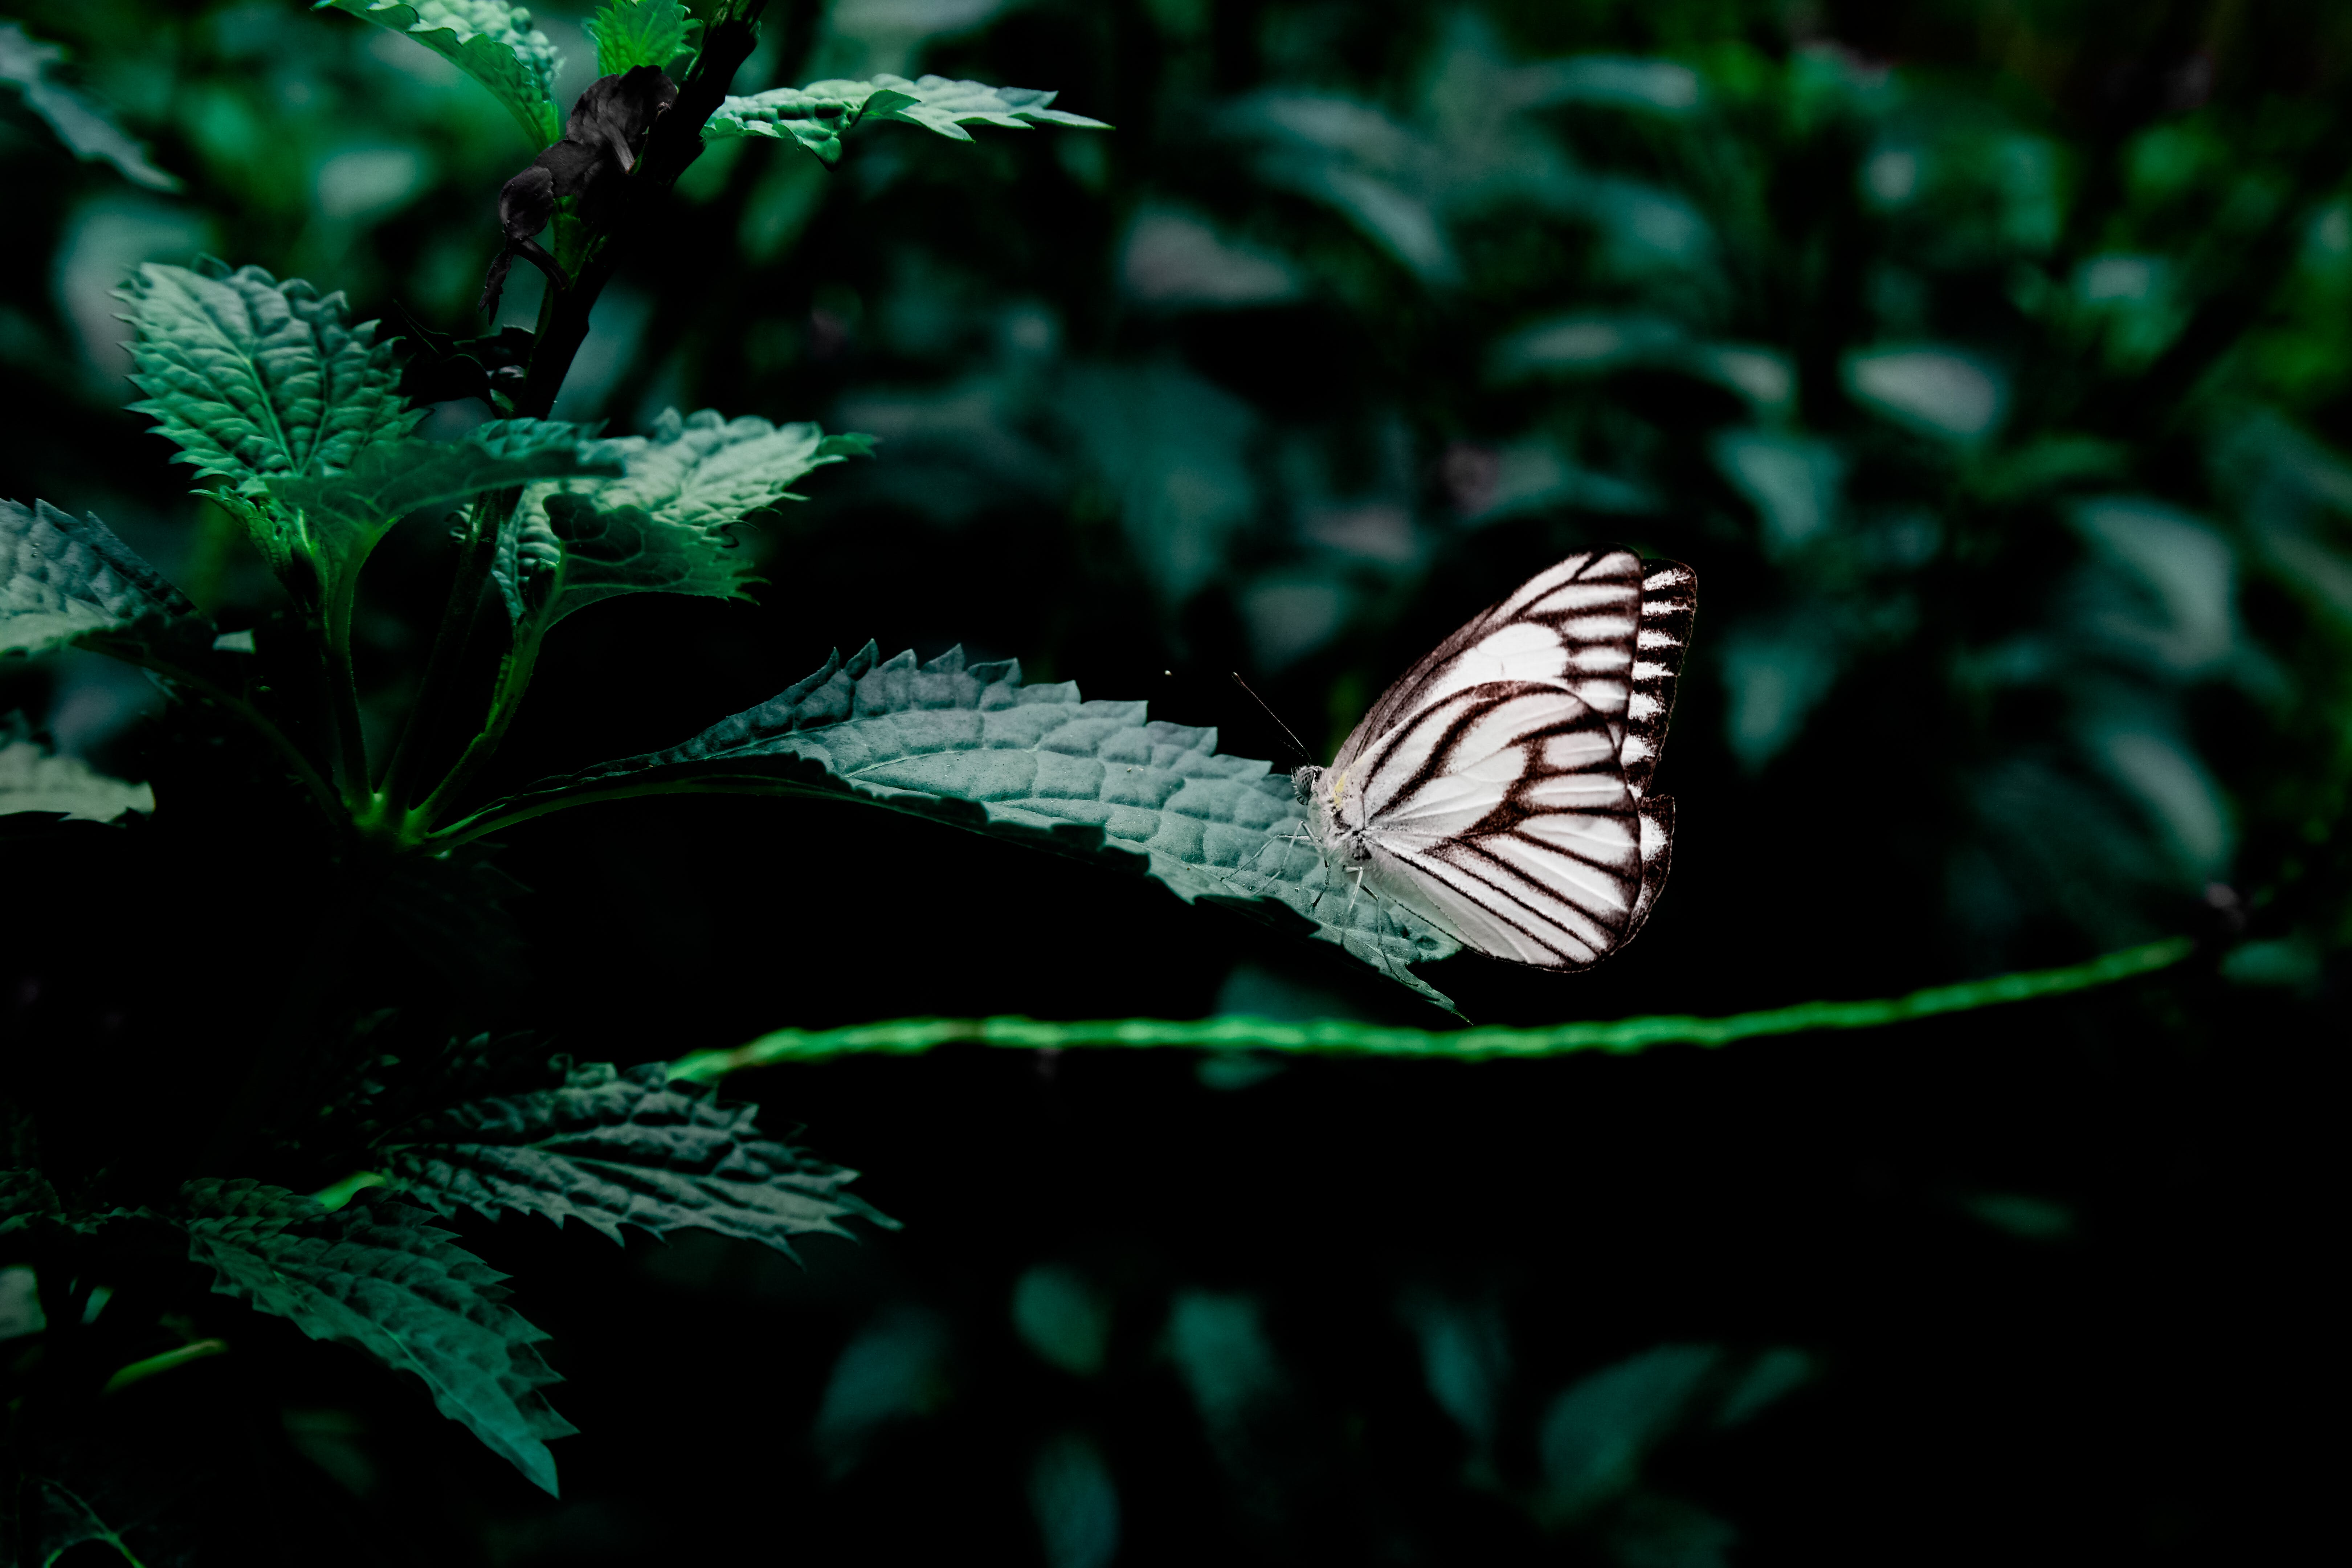 Free stock photo of forest, plant, insect, butterfly